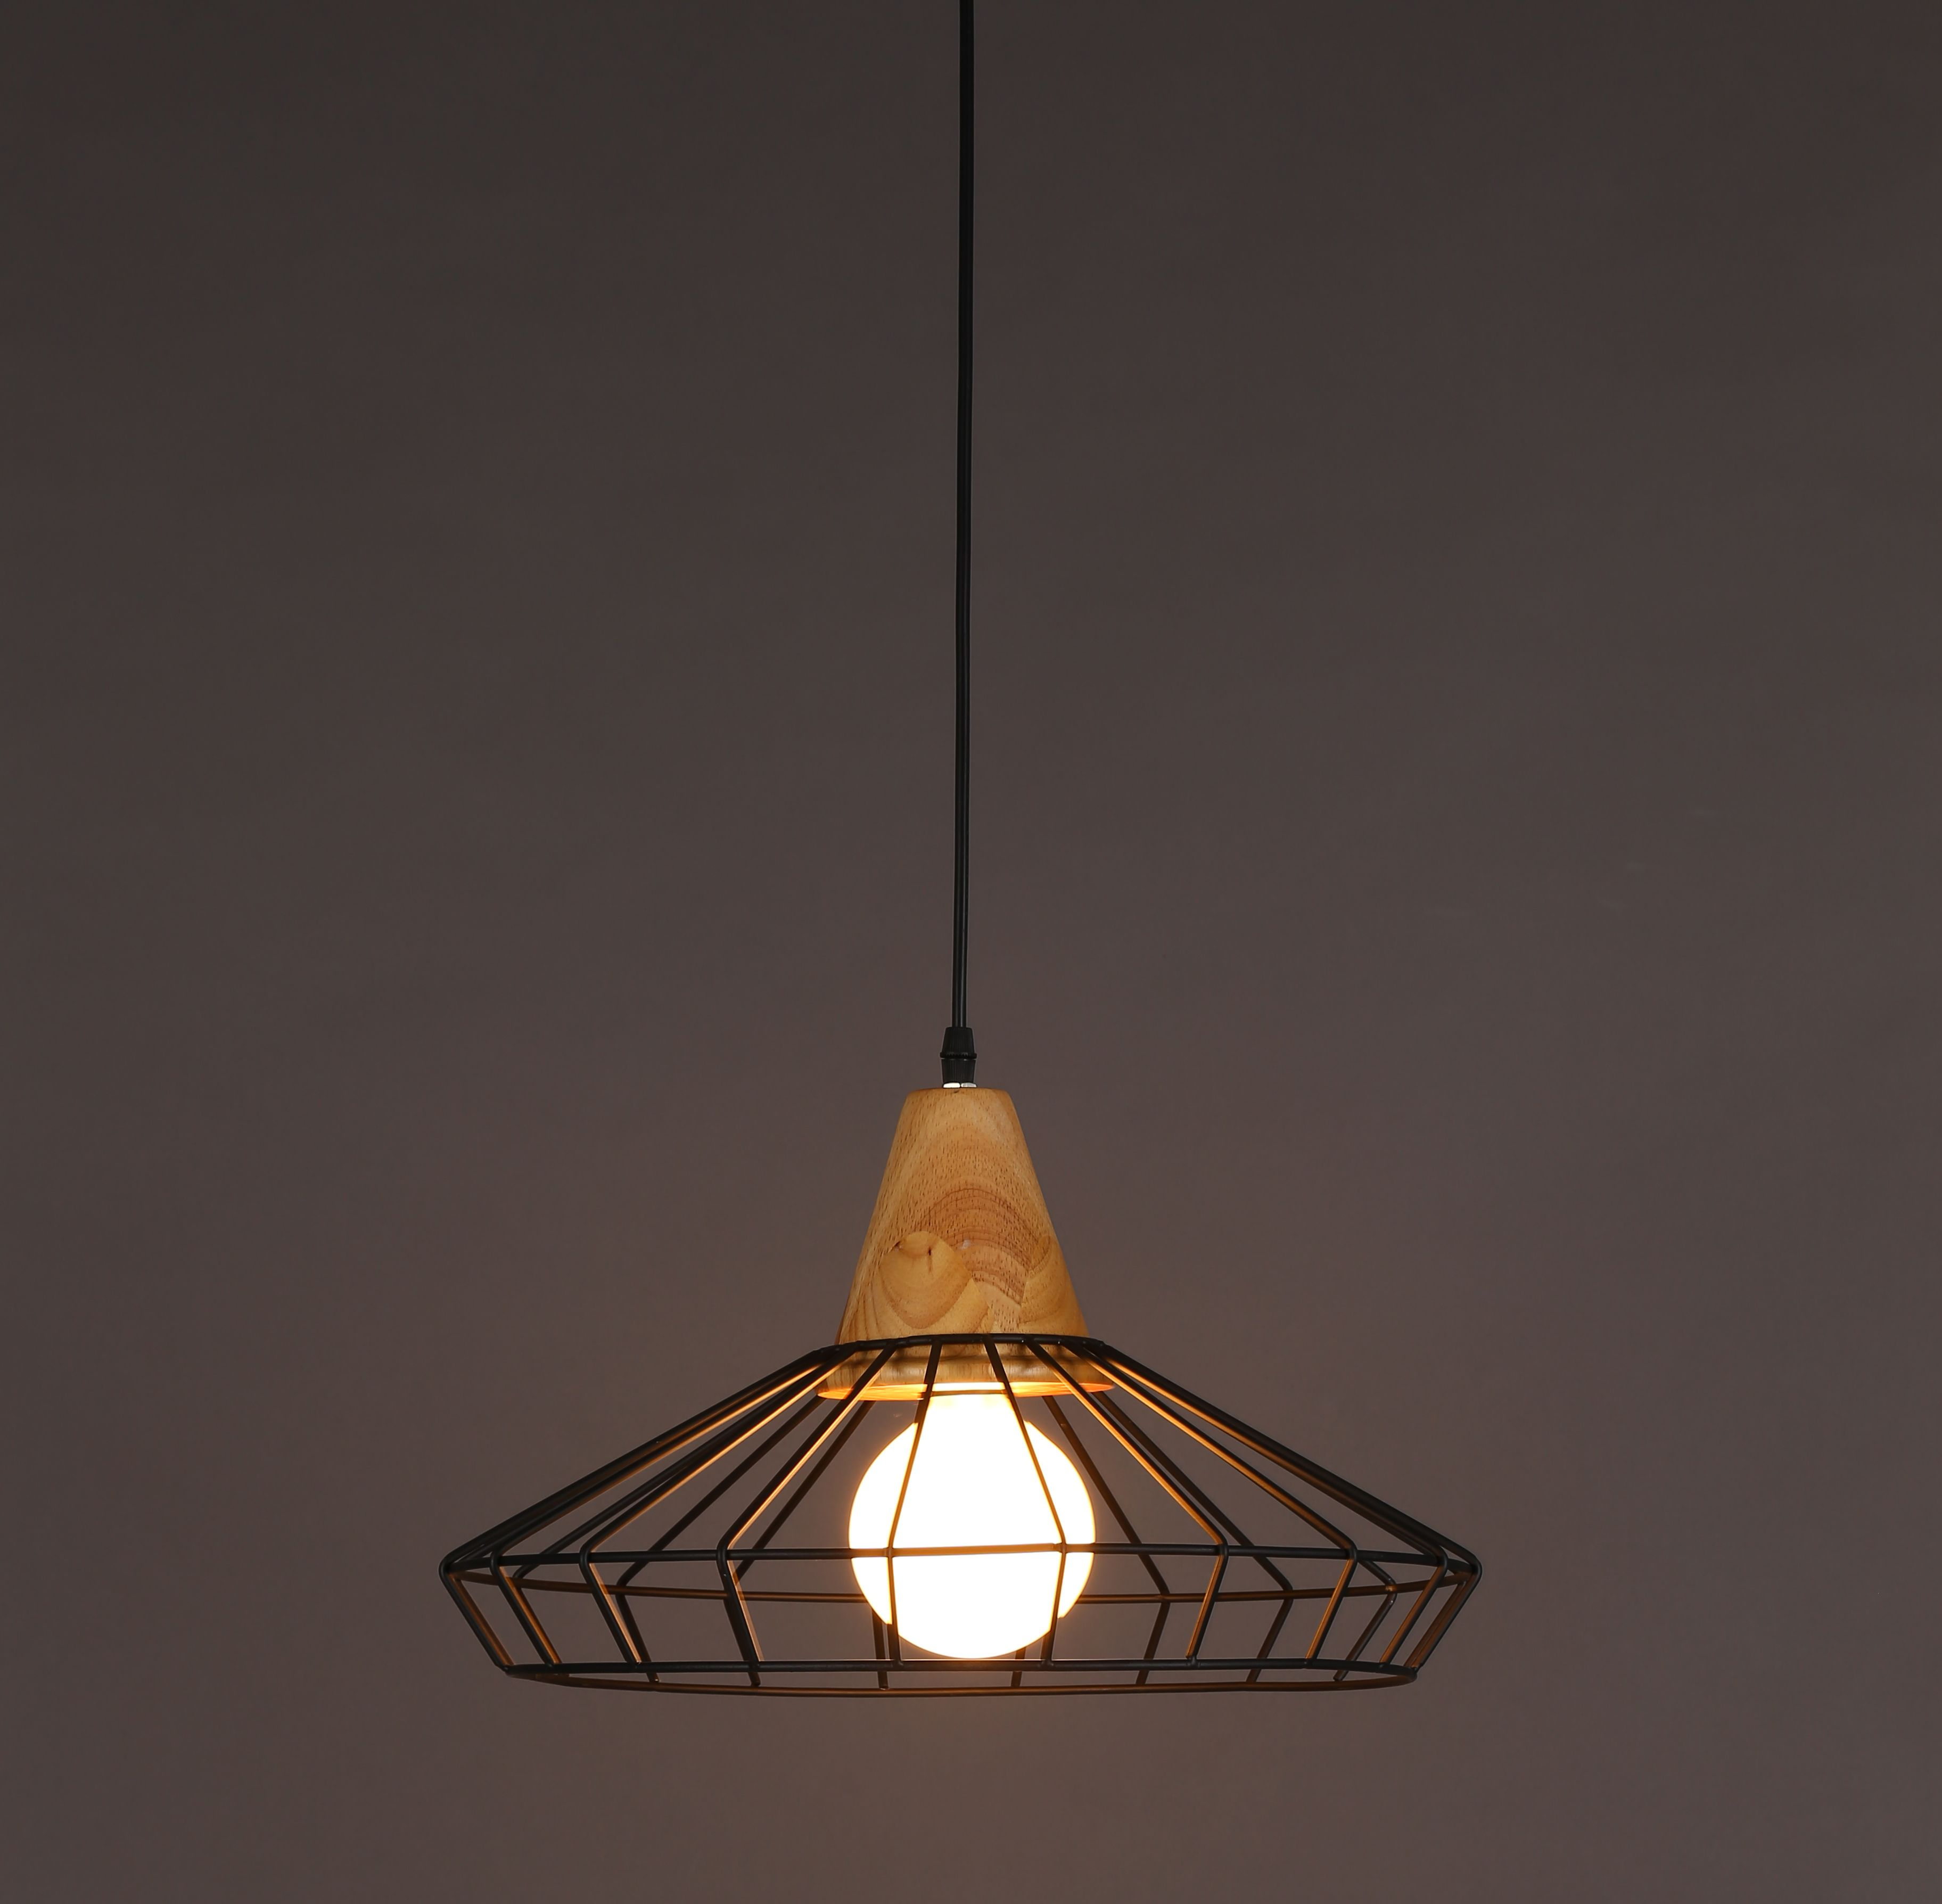 Modern wood metal pendant cage hanging light style a mixture of modern wood metal pendant cage hanging light style a mixture of natural wood and mozeypictures Choice Image